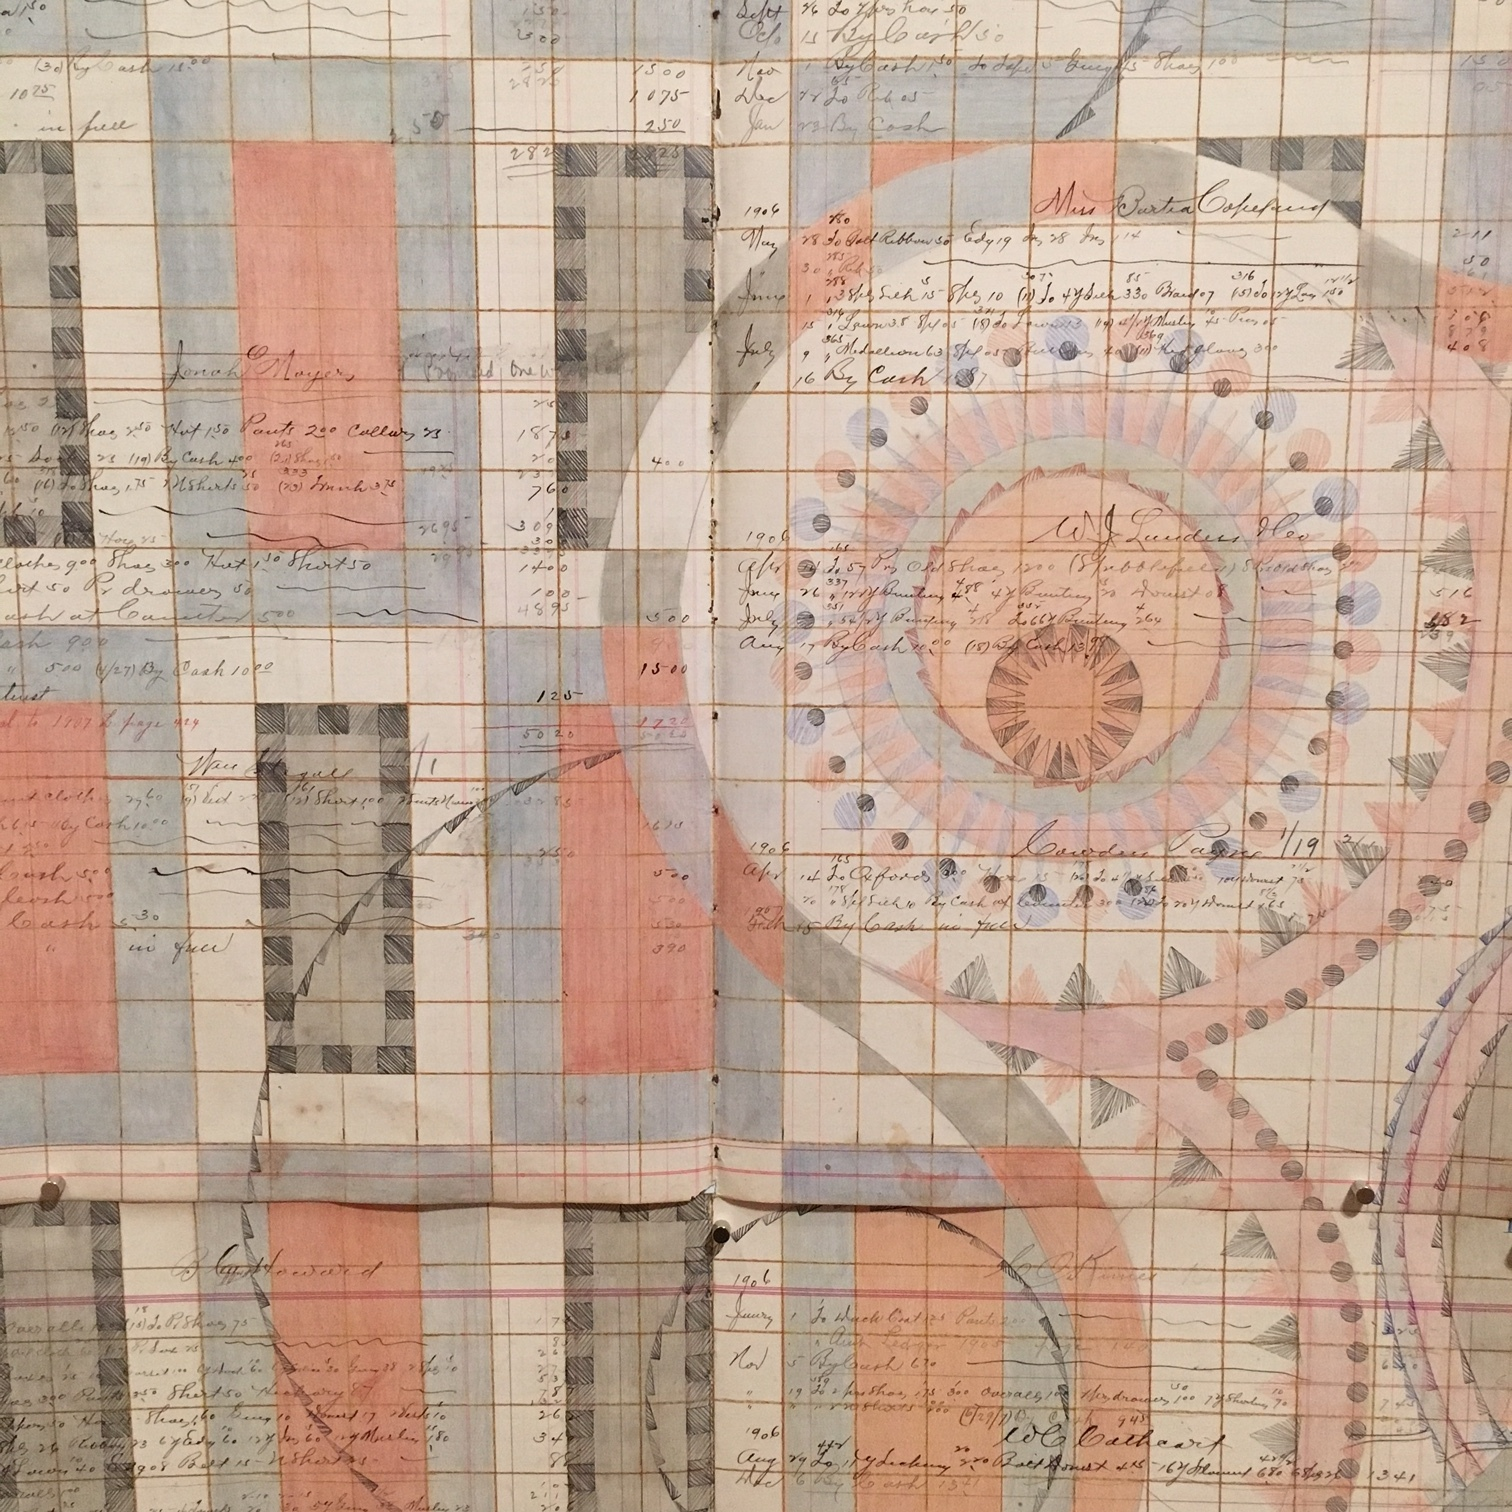 DETAIL of Creation. Colored Pencil and Graphite on Antique Ledger Book Pages. 71 1/2 x 68 1/2